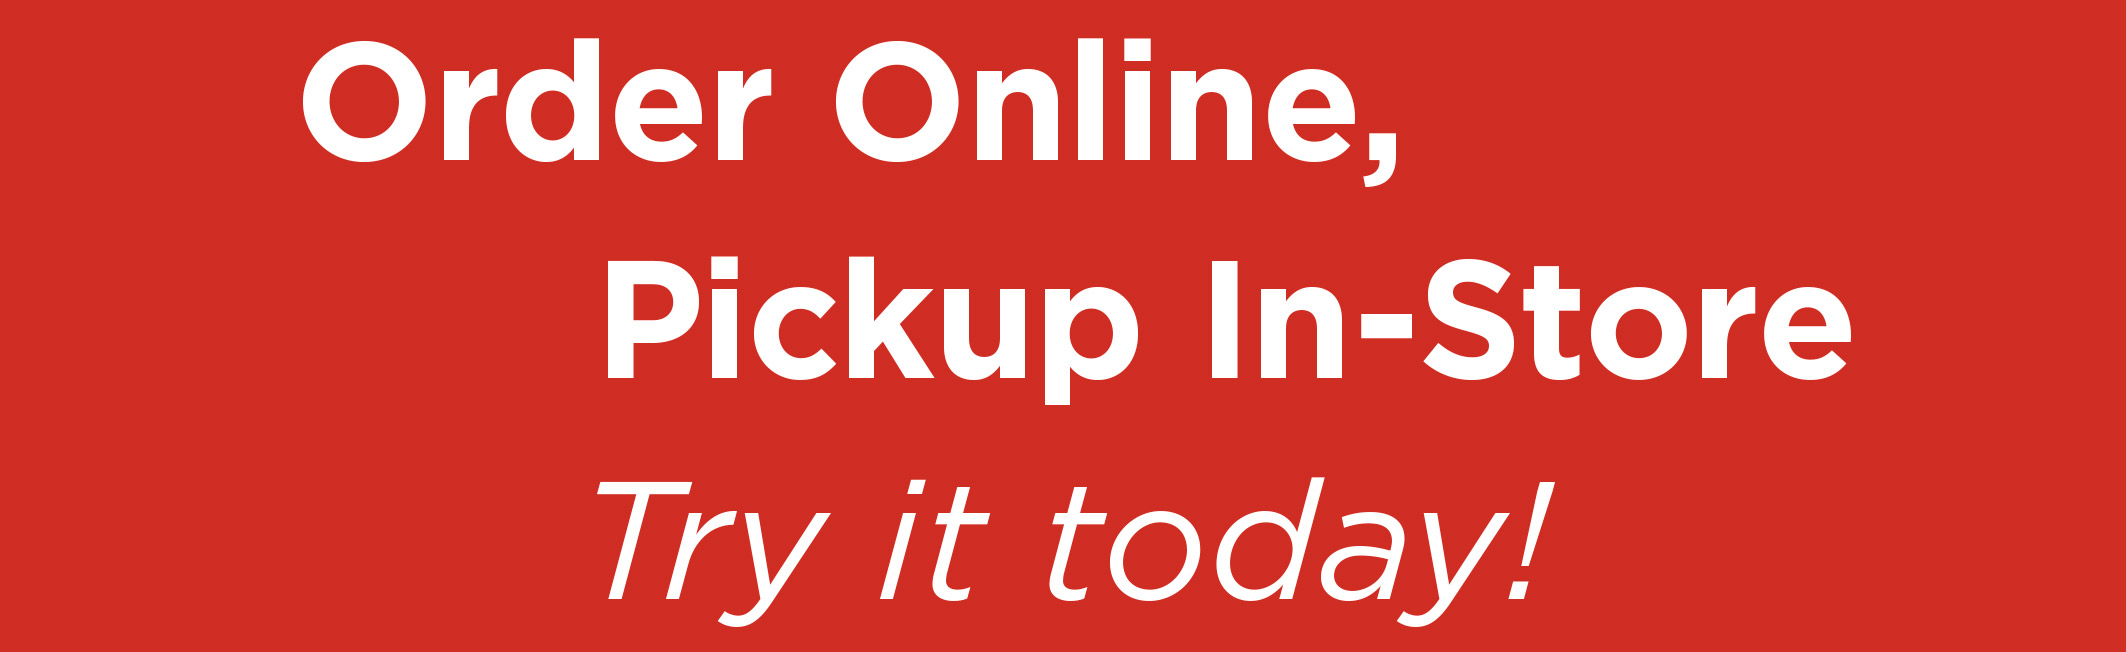 Order Online, Pickup In-Store. Try it today!